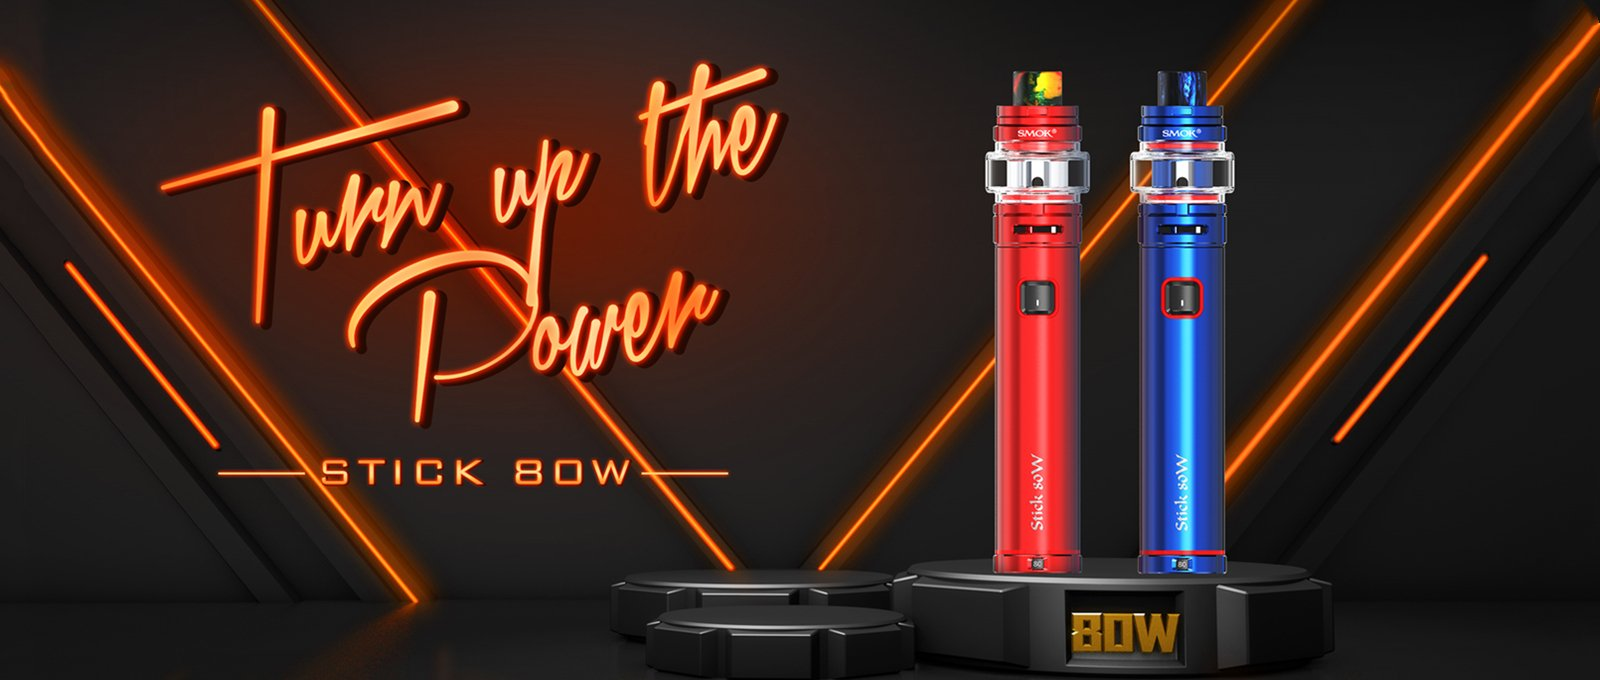 SMOK STICK 80W STARTER KIT REVIEW